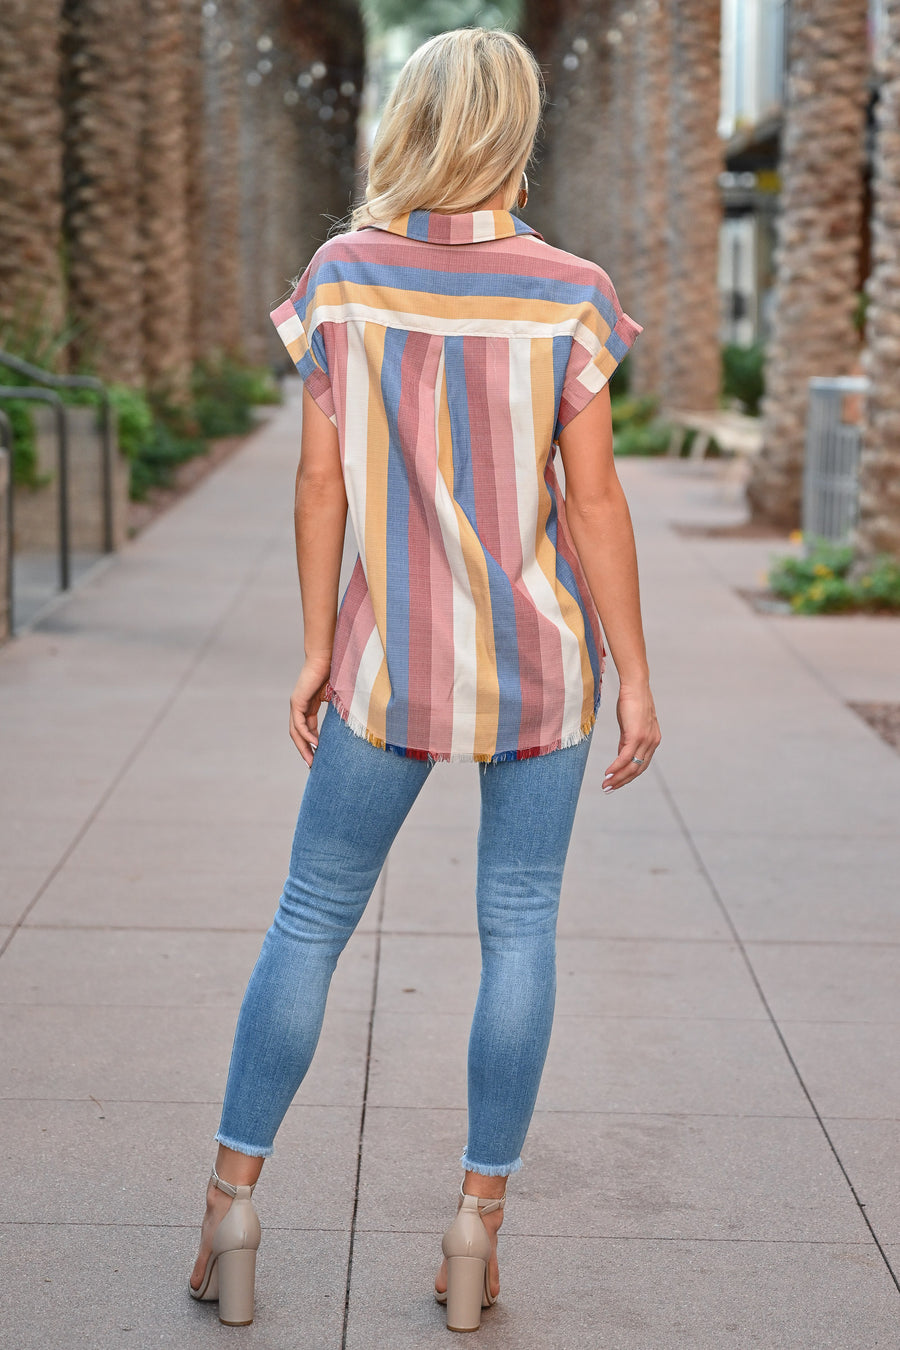 Full of Heart Button Down Top - Multi womens trendy striped collared short sleeve top closet candy front 2